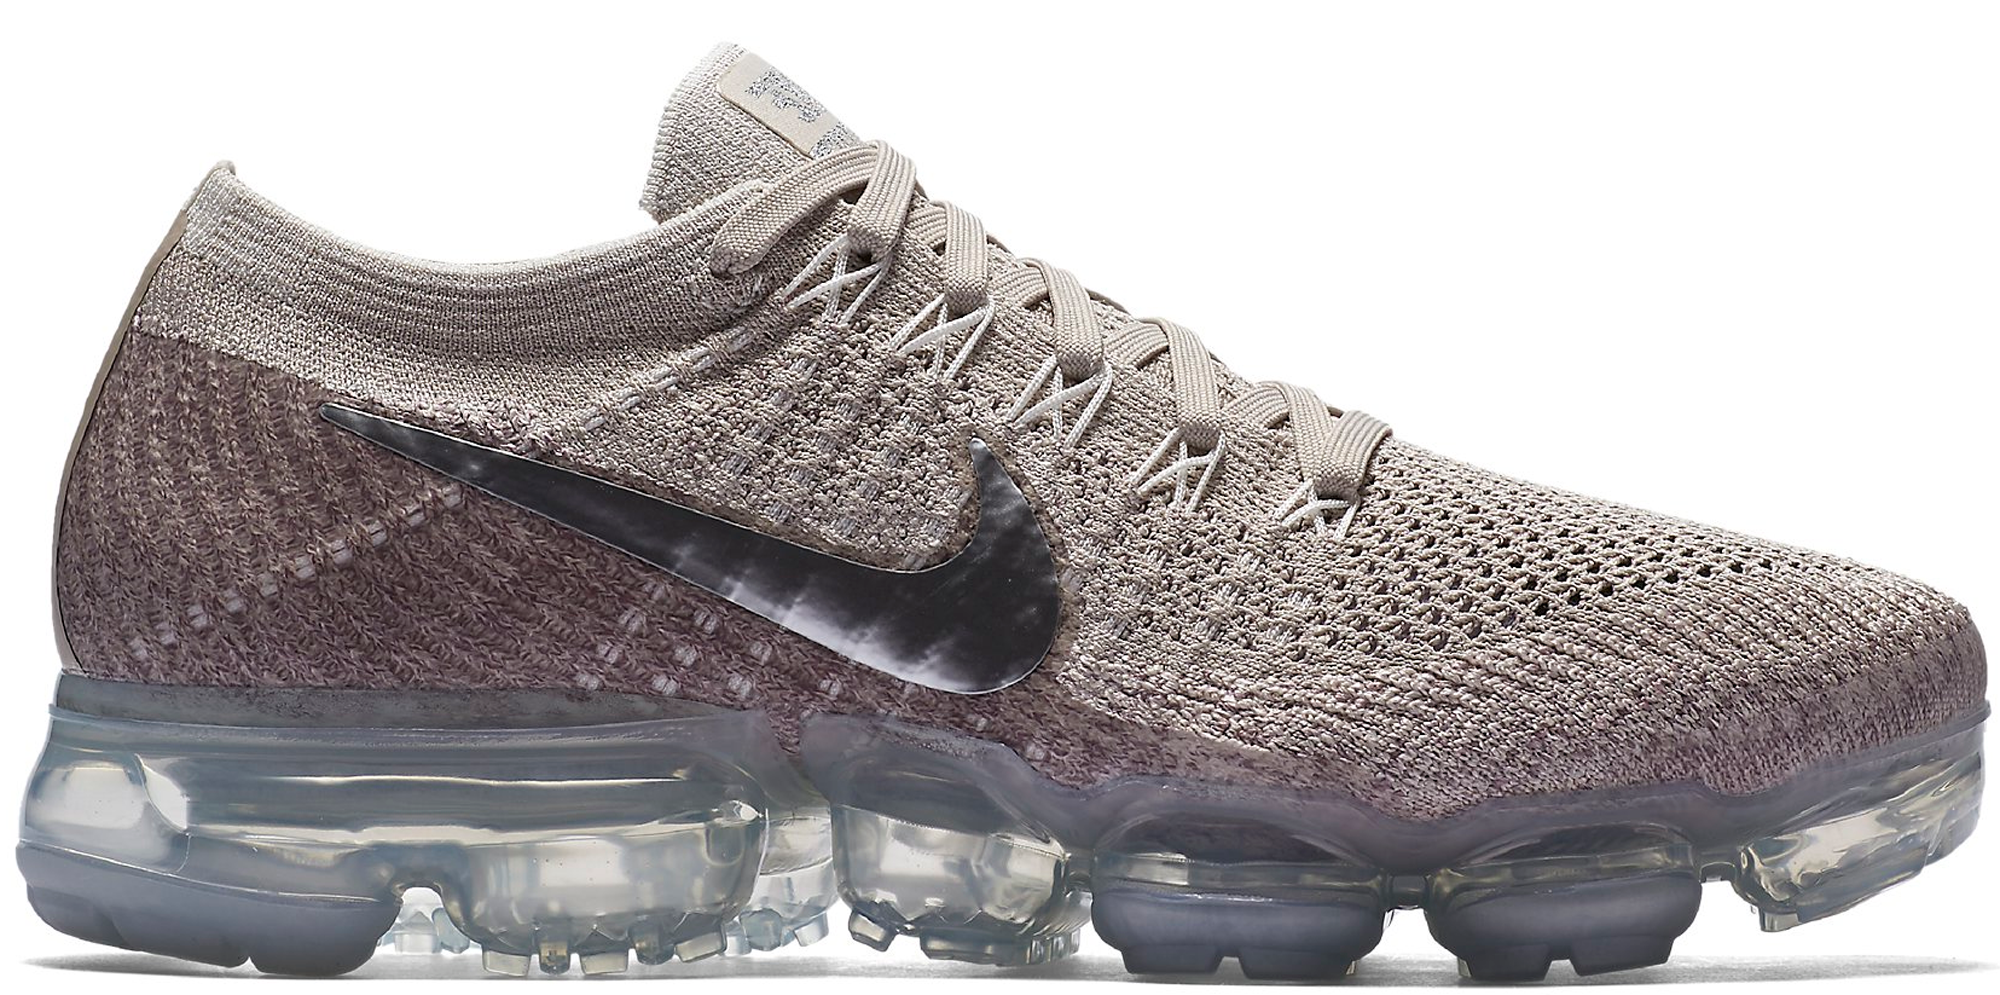 Nike Air Vapormax 'Pale Grey'. Nike SNKRS